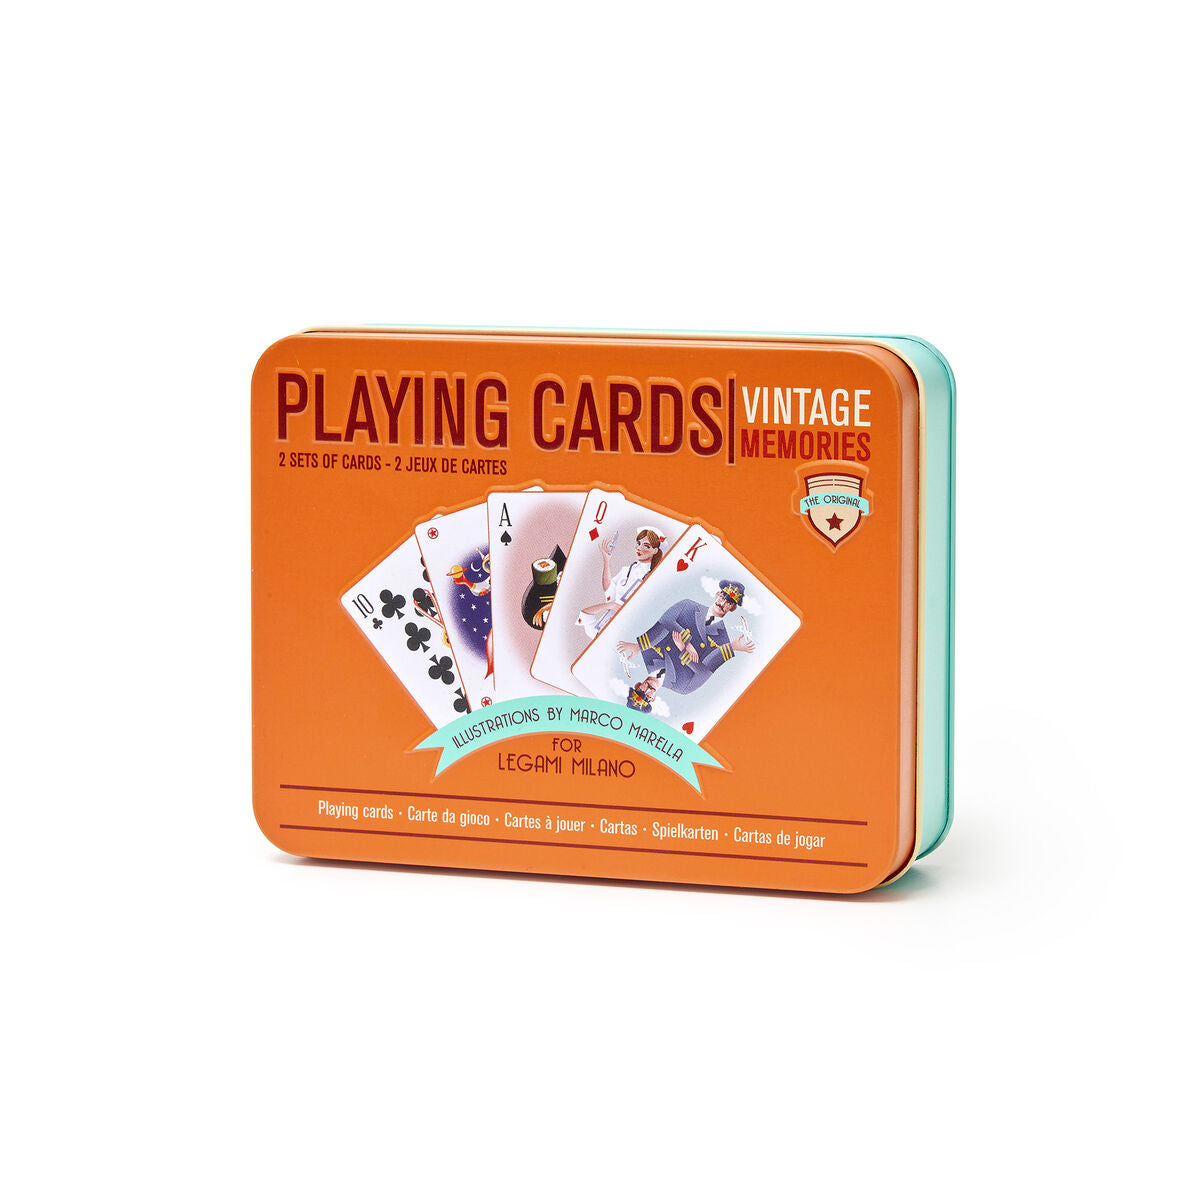 Legami Playing Cards Box | Vintage Memories | Gift Ideas For Him | For Brother | For Men | For Husband | Gifting Made Simple